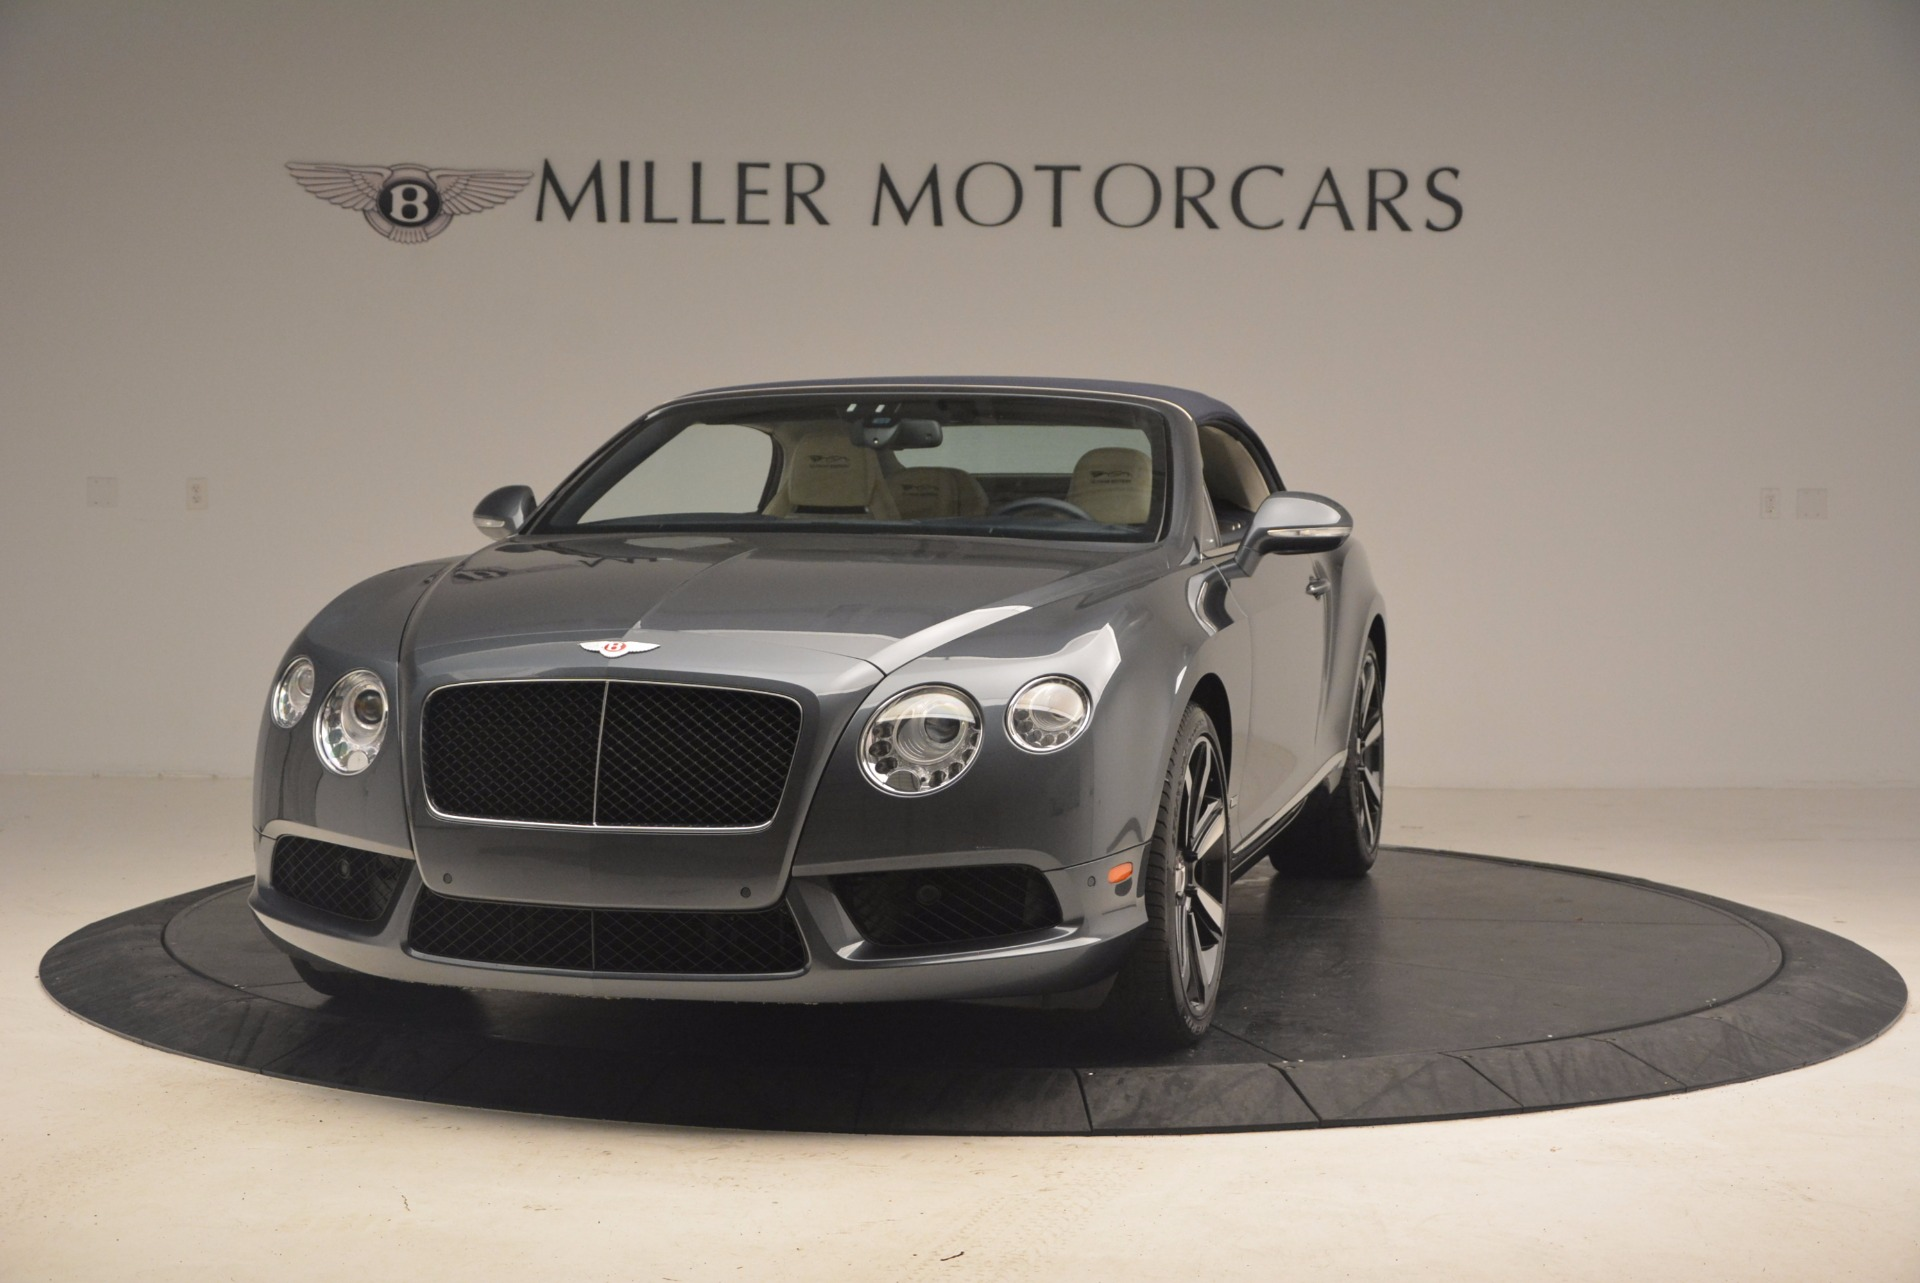 Used 2013 Bentley Continental GT V8 Le Mans Edition, 1 of 48 For Sale In Greenwich, CT 1288_p14